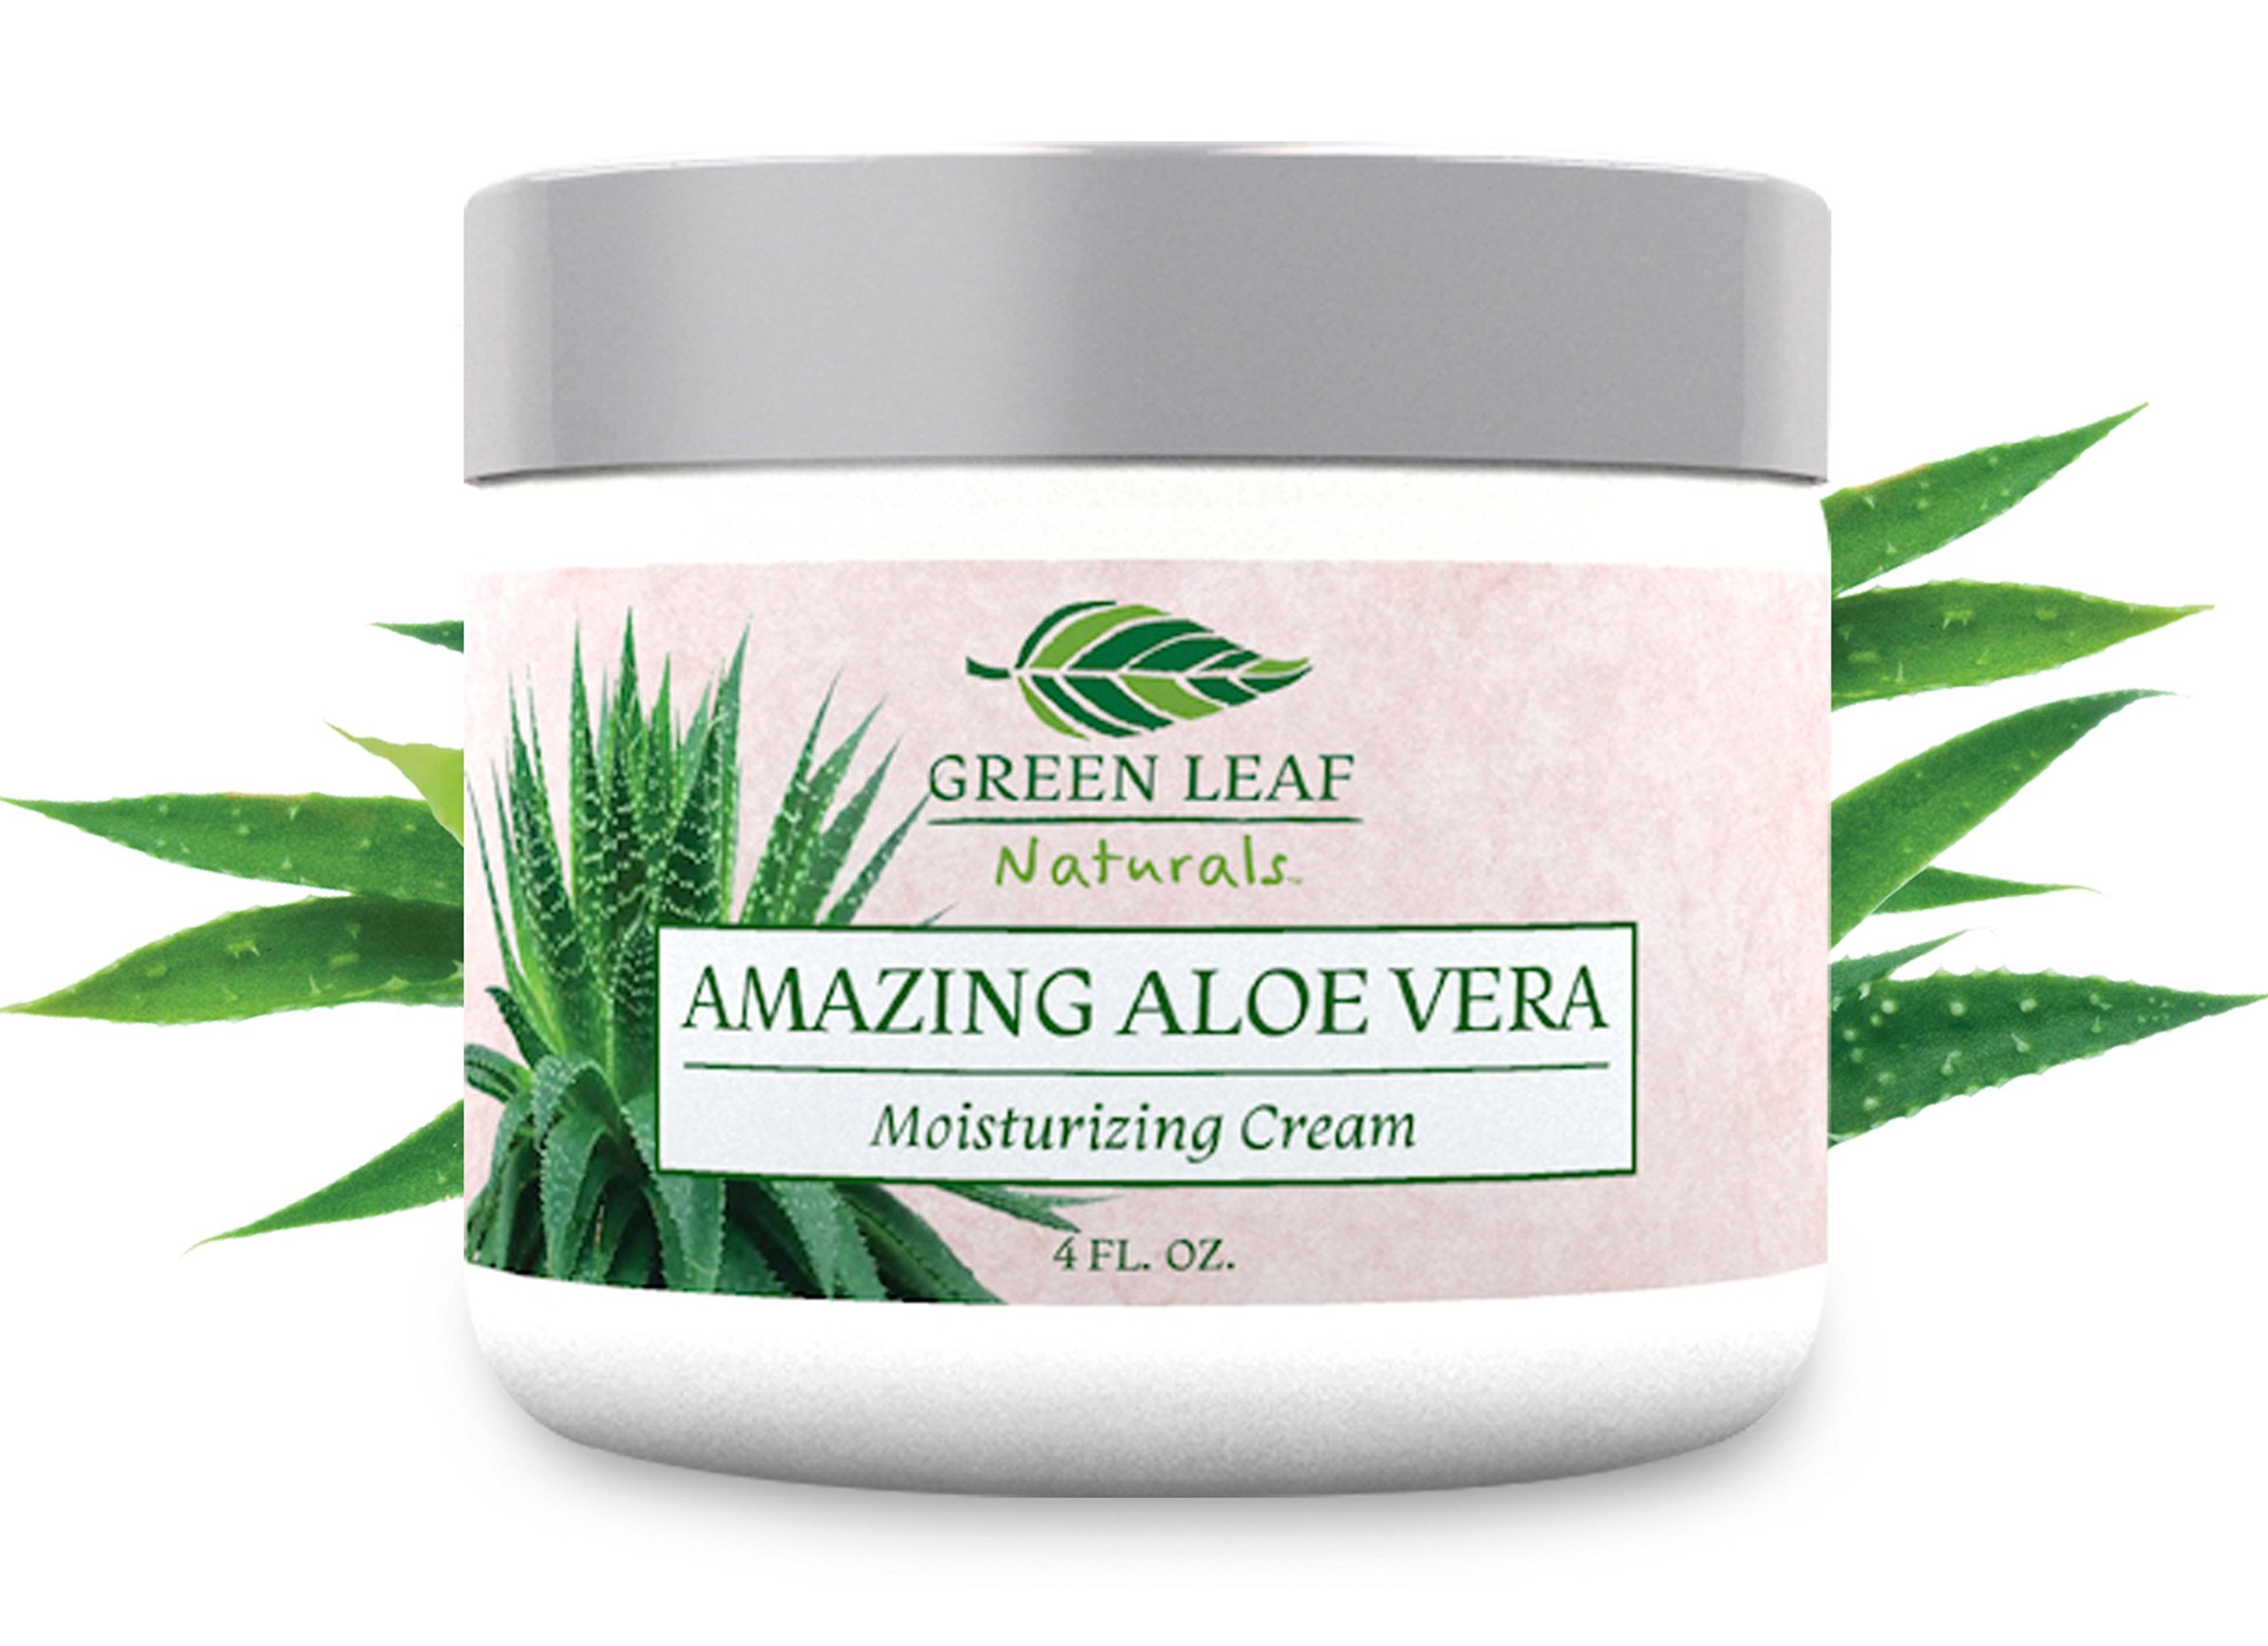 Amazing Aloe Vera Moisturizing Cream for Women - All Purpose Facial Skincare for All Skin Types - Natural and Organic Ingredients - Your Anti-Aging Face Moisturizer from Green Leaf Naturals (4 oz)